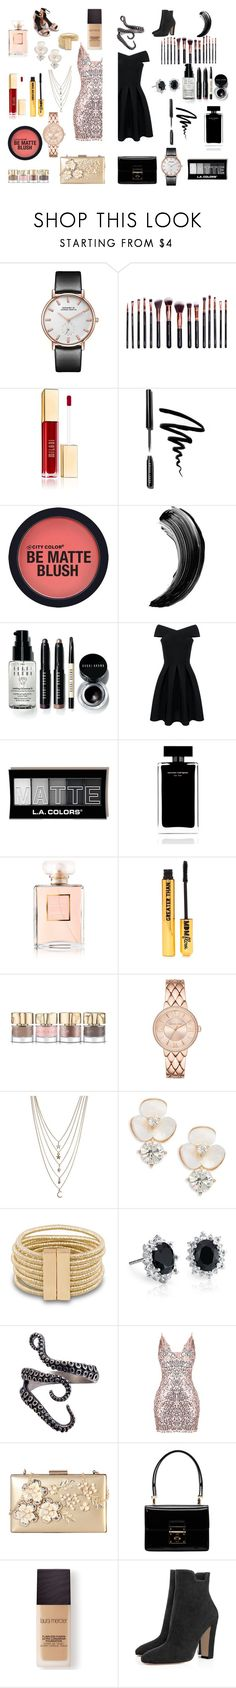 """""""Untitled #12"""" by bluephoenx ❤ liked on Polyvore featuring M.O.T.D Cosmetics, Bobbi Brown Cosmetics, Narciso Rodriguez, Chanel, Nasty Gal, Smith & Cult, Ettika, Kate Spade, Blue Nile and Rimen & Co."""